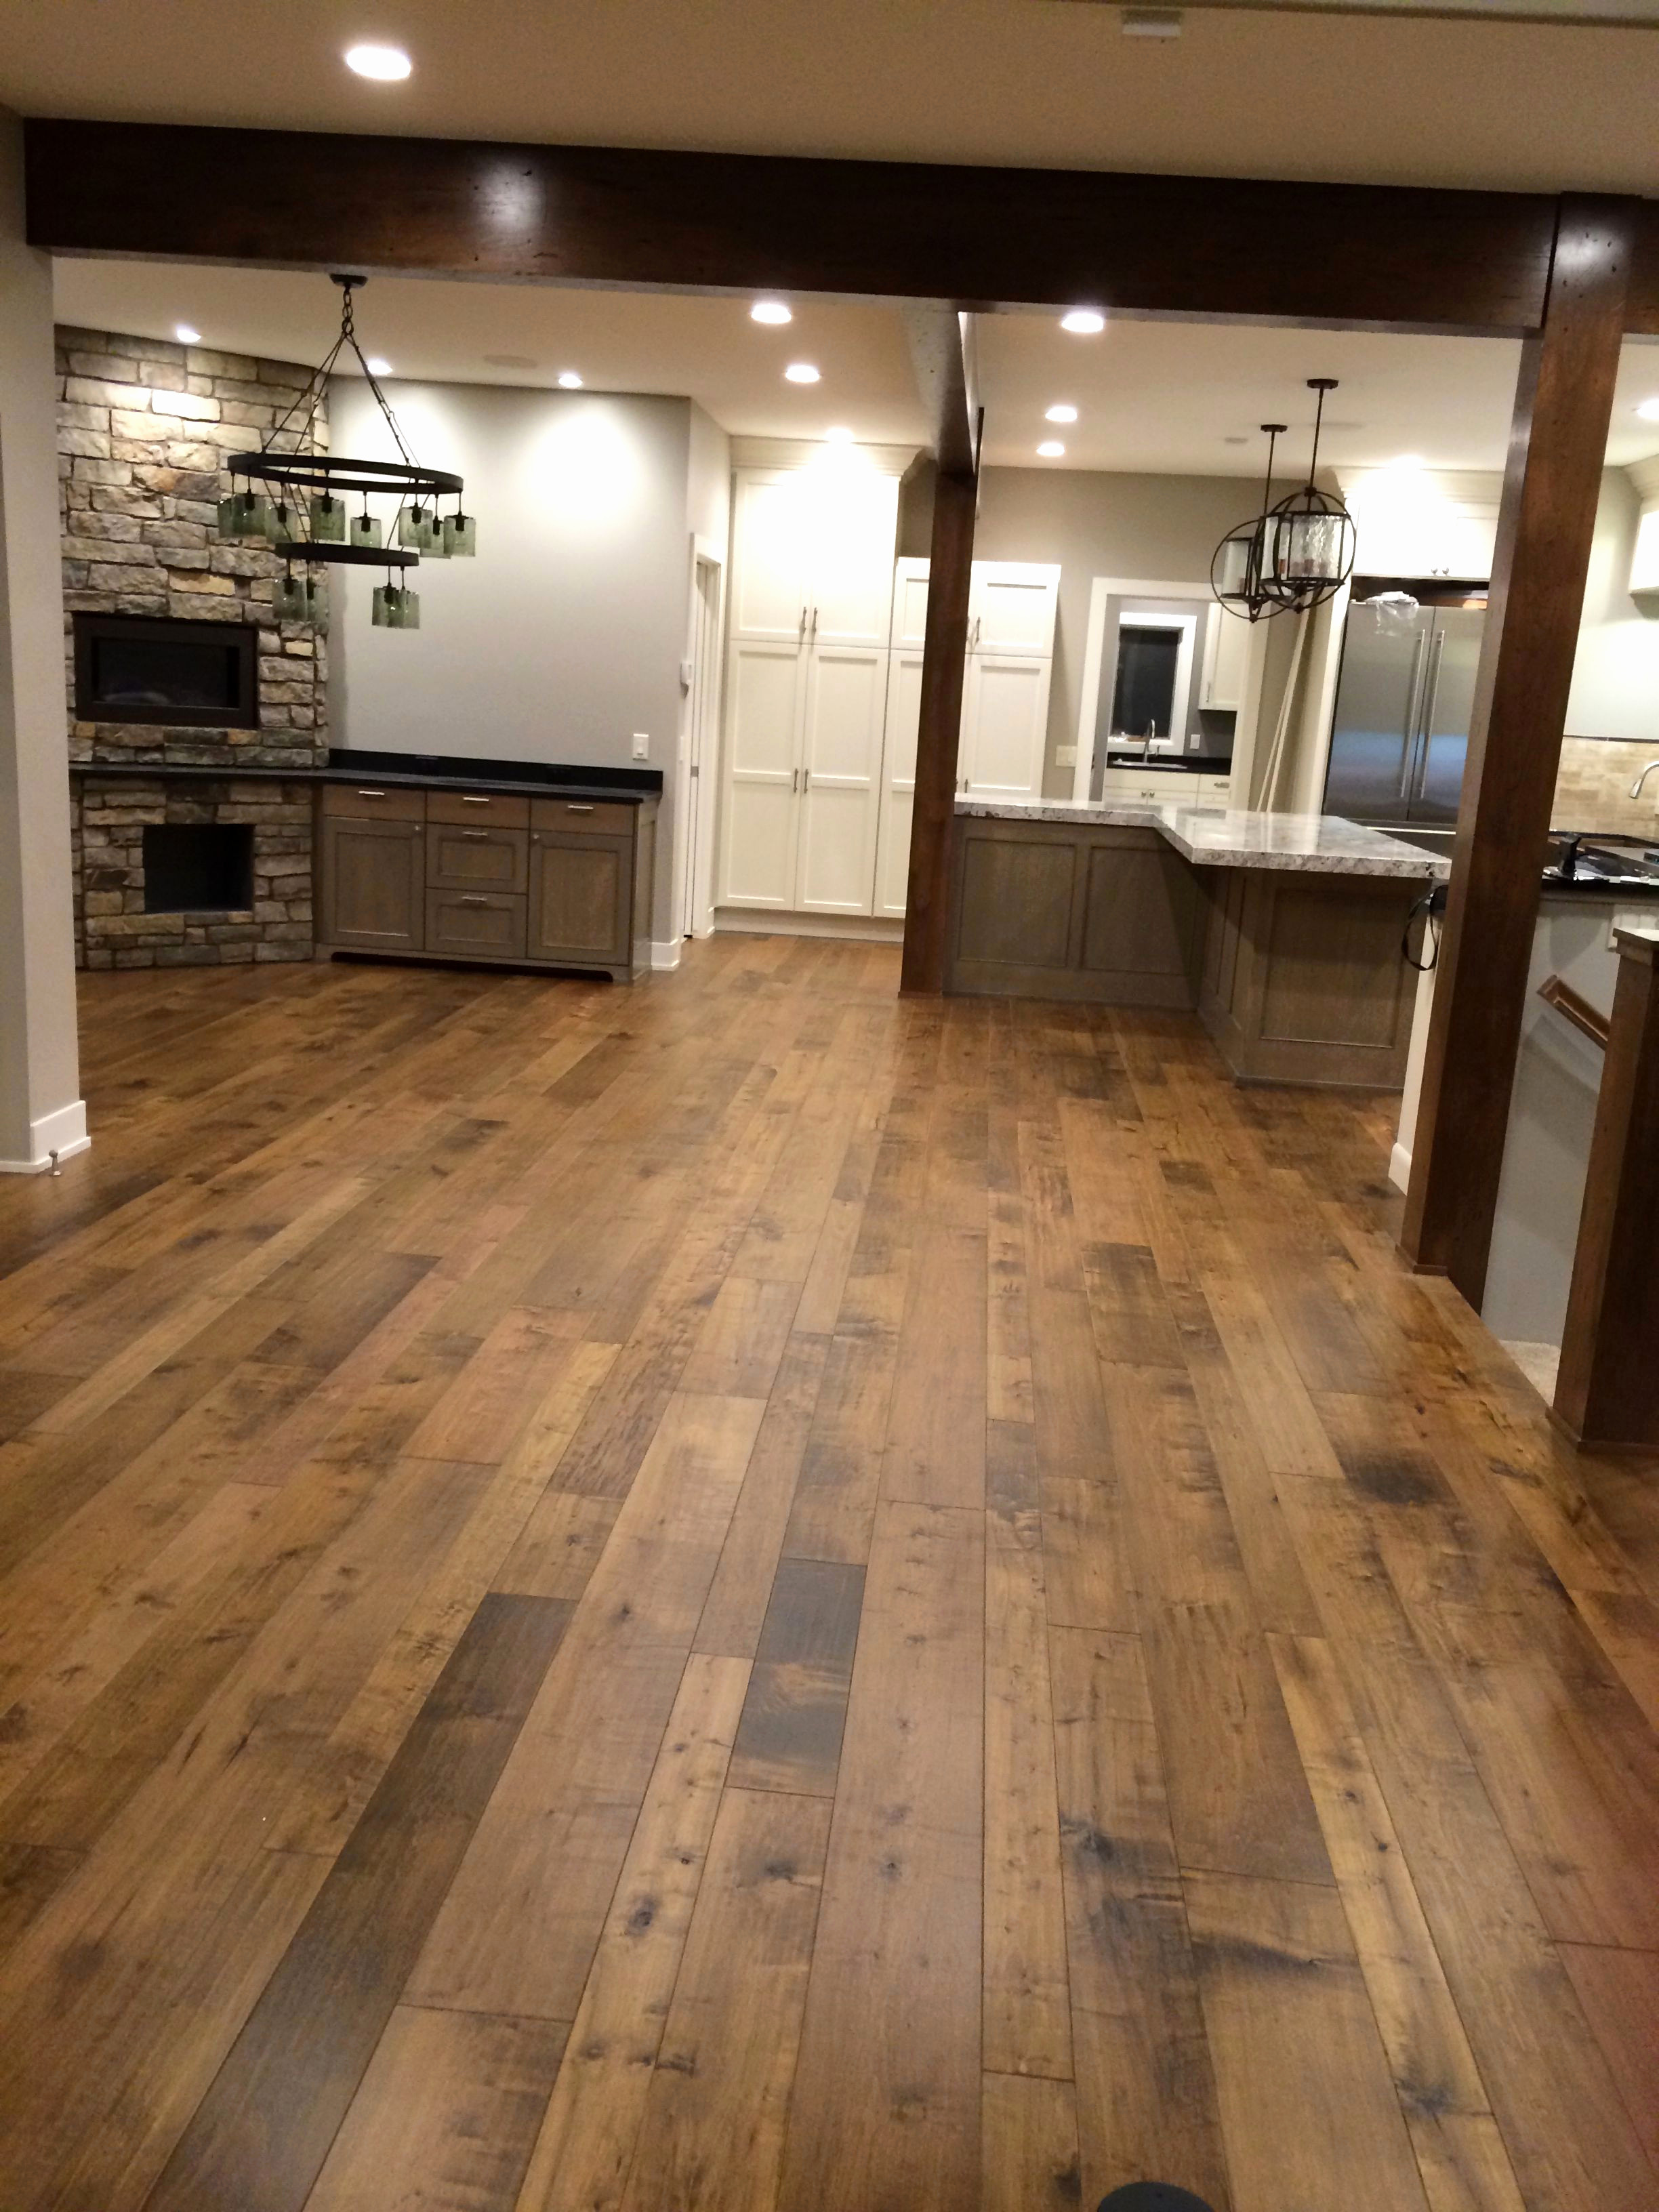 how much does refinishing hardwood floors cost of how much does it cost to refinish hardwood floors yourself pertaining to how much does it cost to refinish hardwood floors yourself inspirational hardwood floor designs the floors